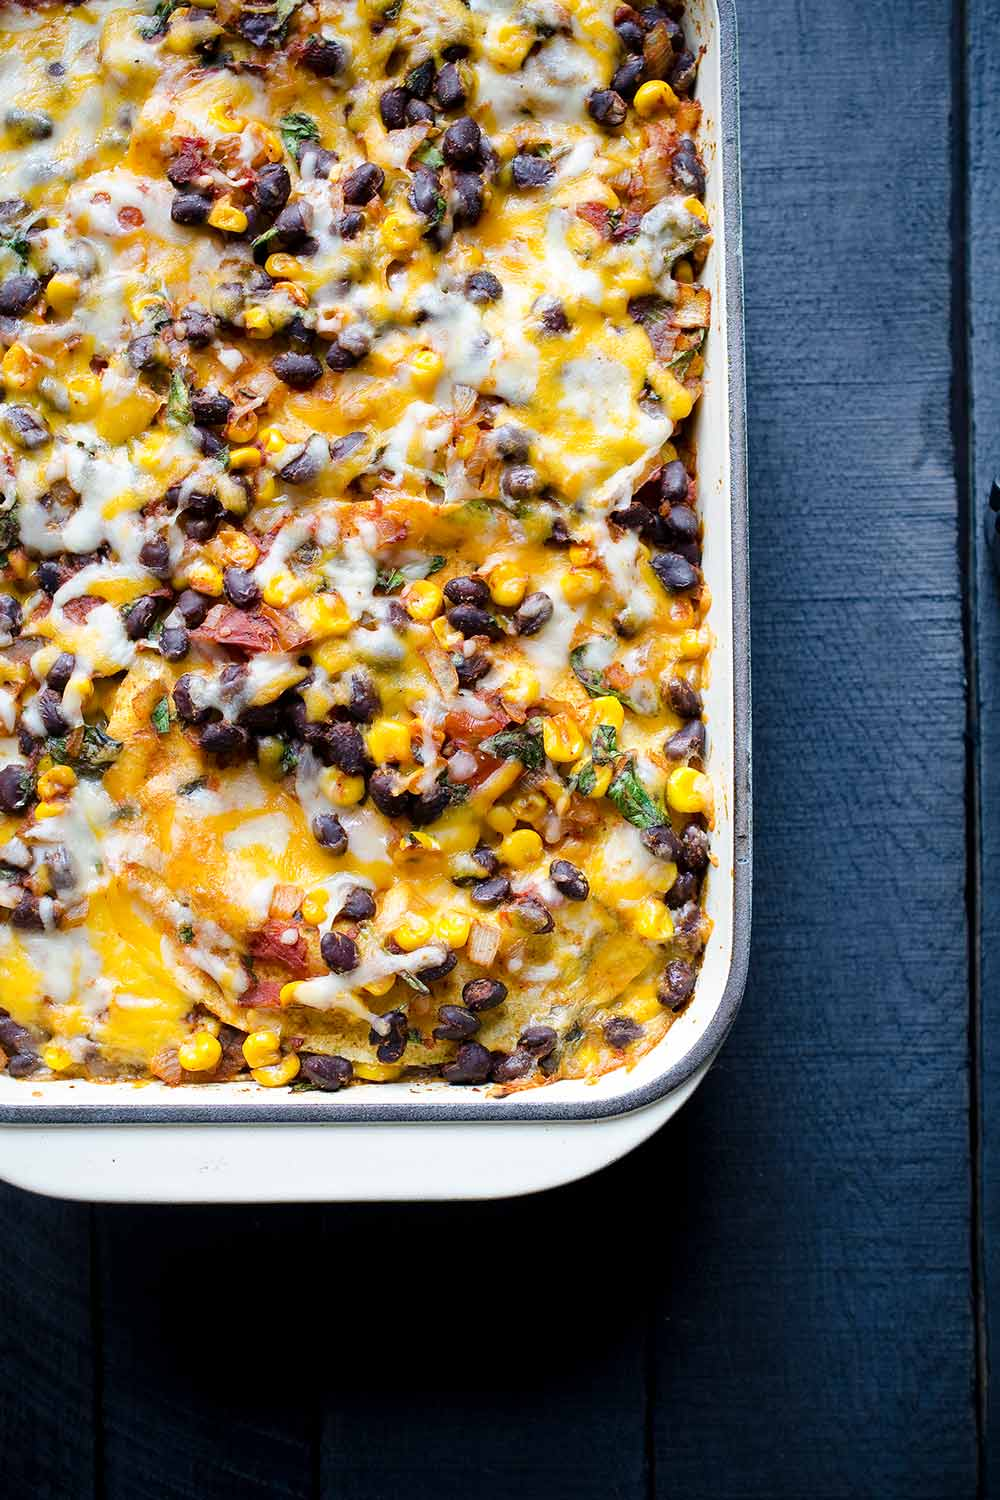 Mexican casserole just out of the oven.